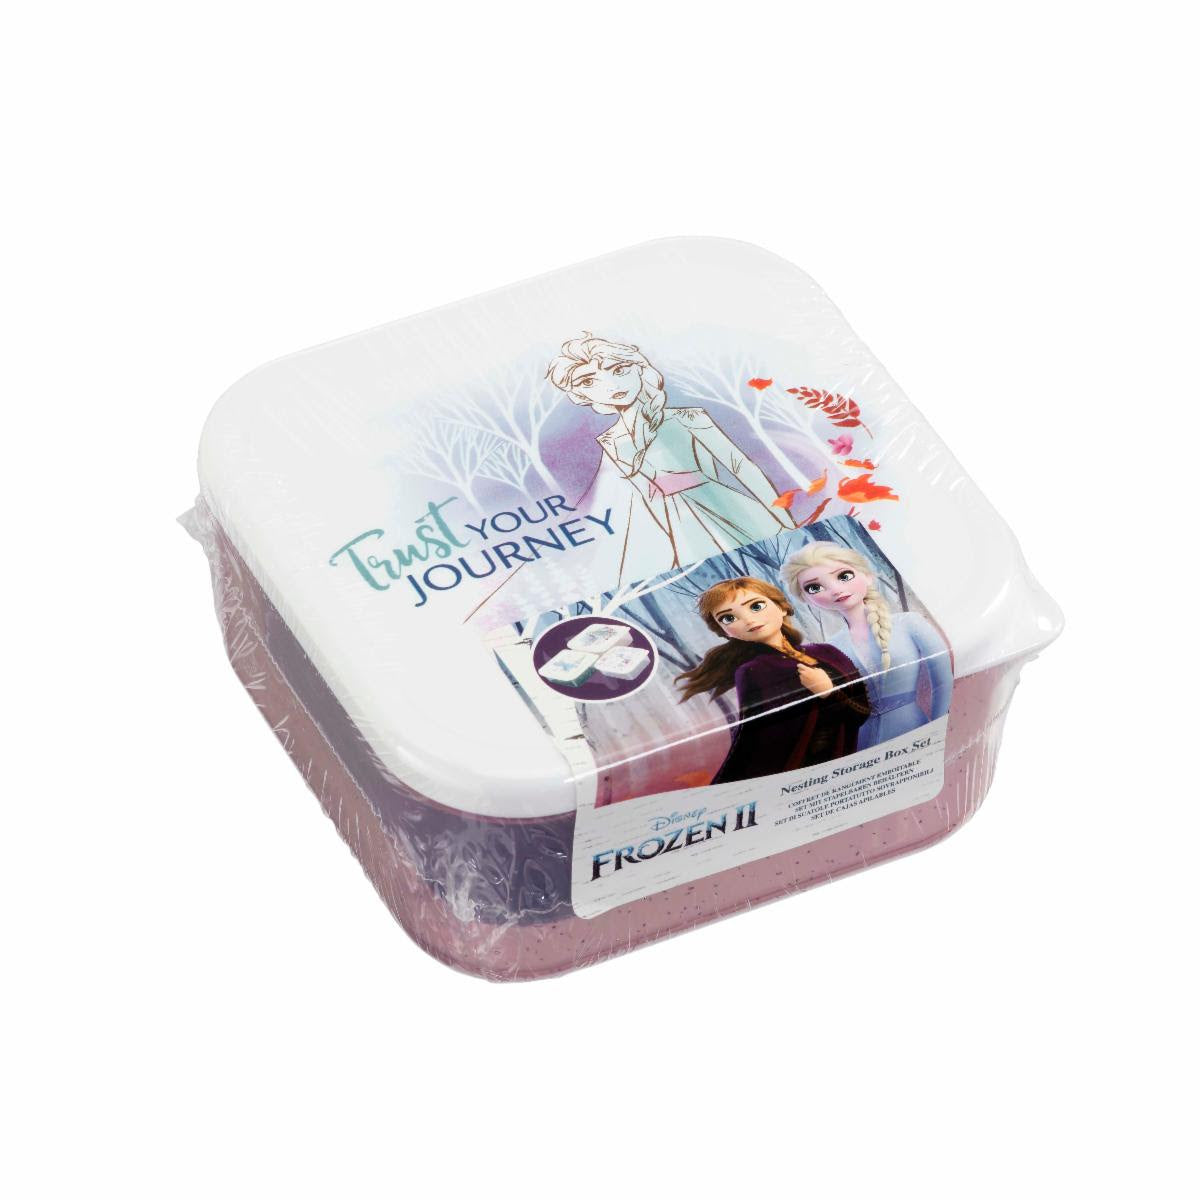 Frozen Fearless Range: Plastic Storage Set: Trust Your Journey